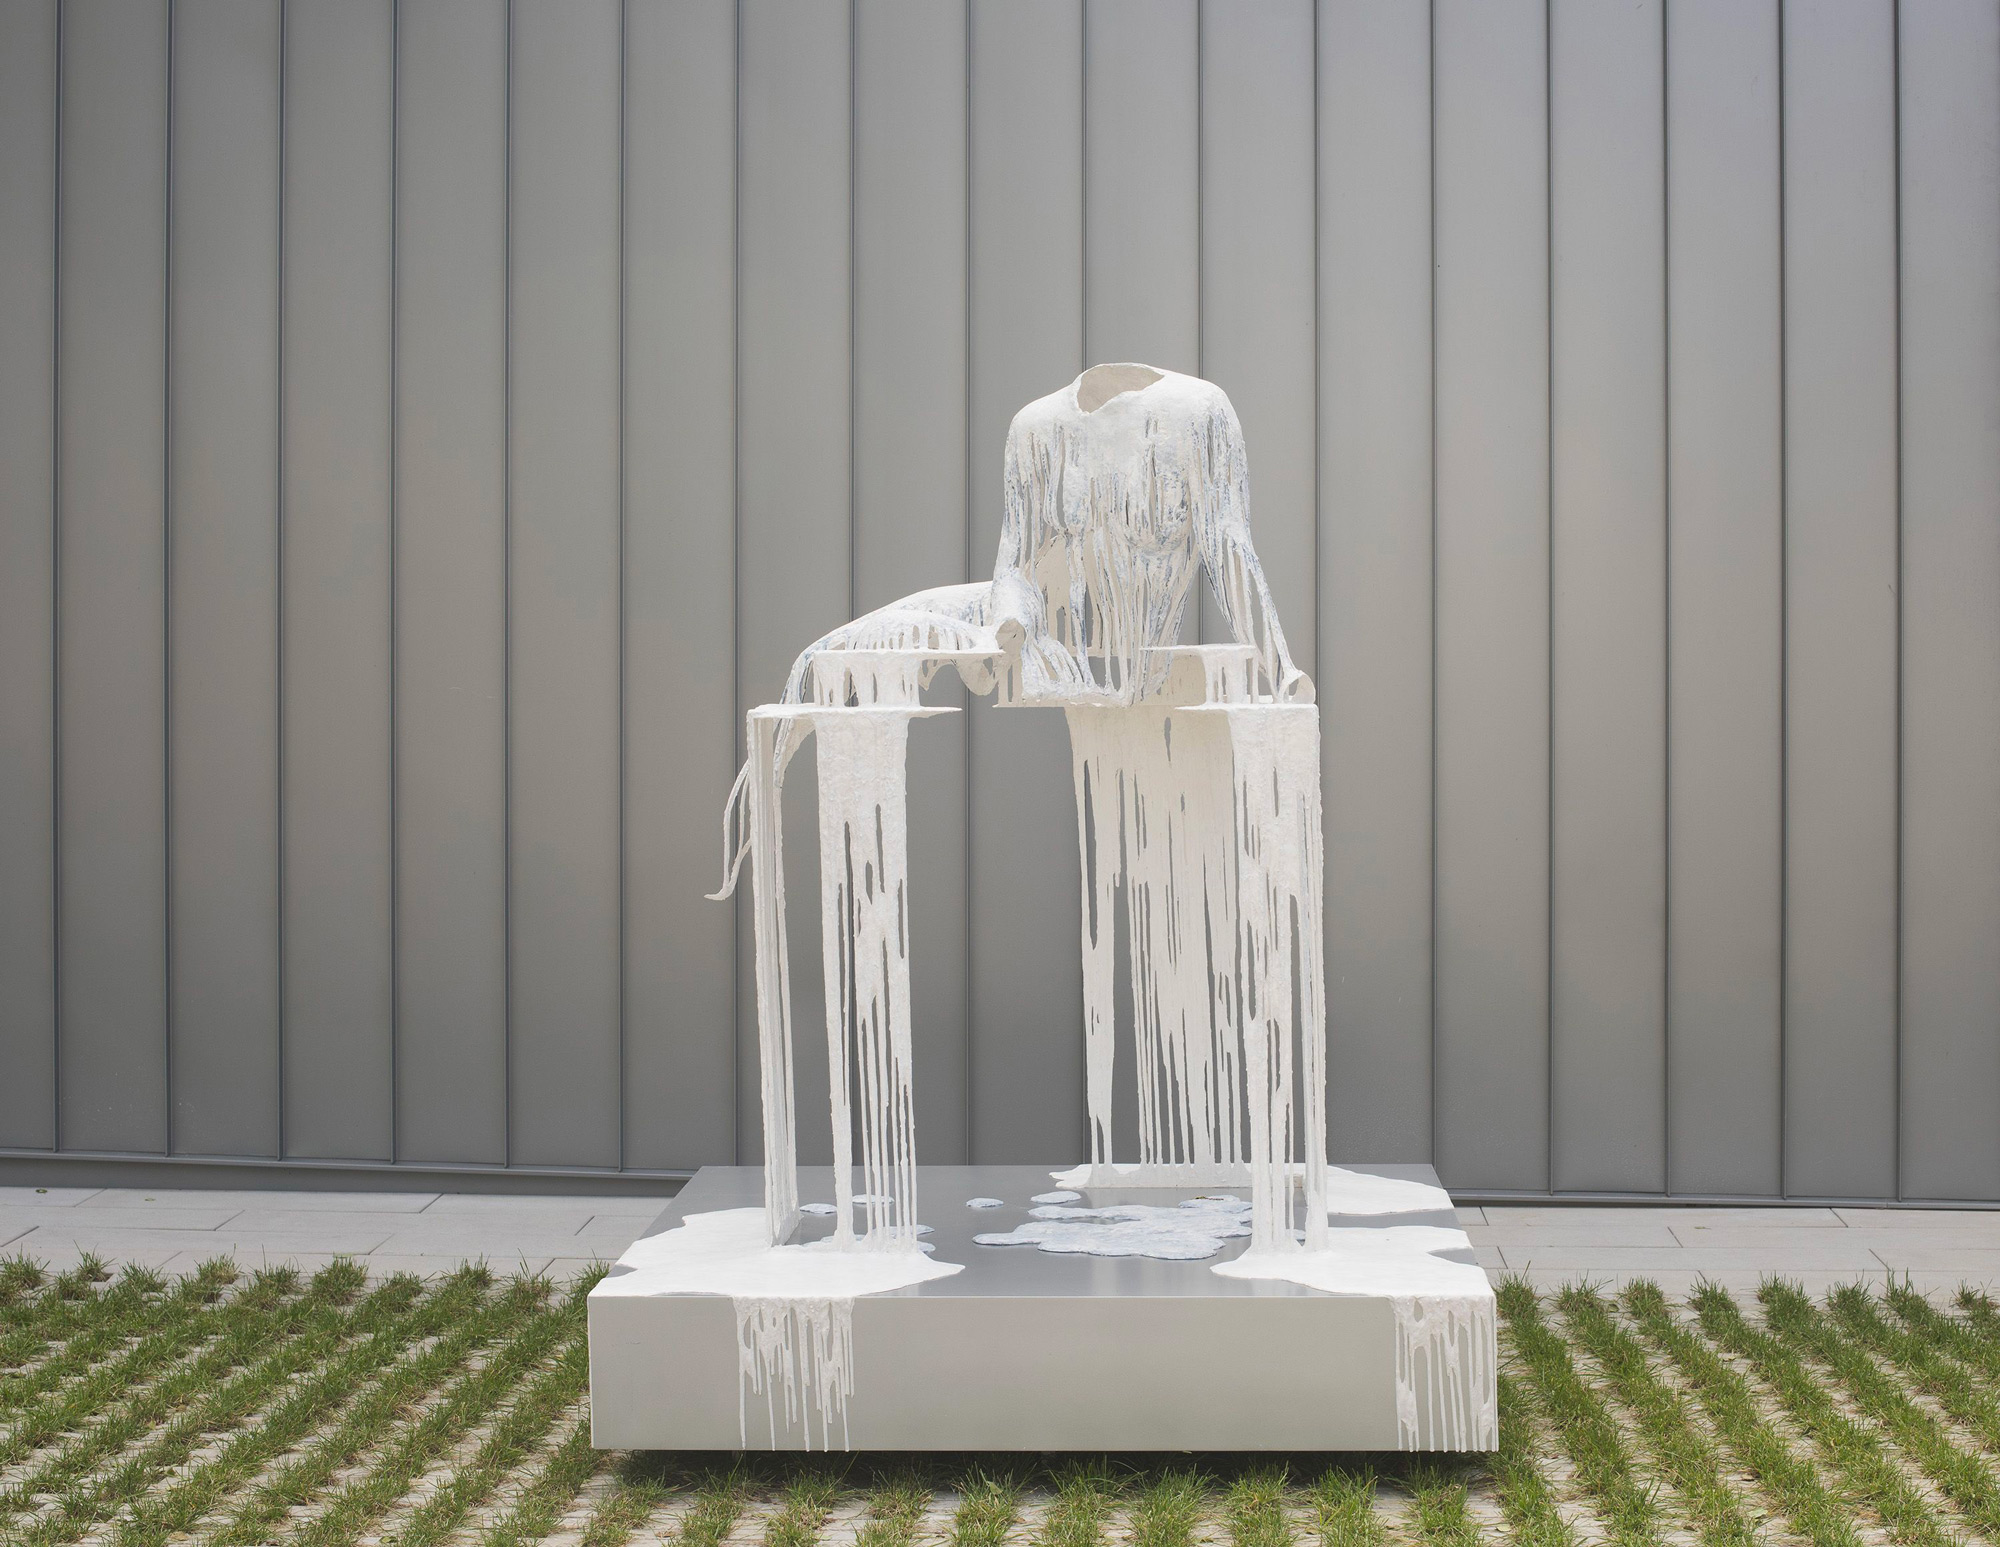 Ghostly Figures Occupy Sculptures of Architectural Ruin by Diana Al-Hadid